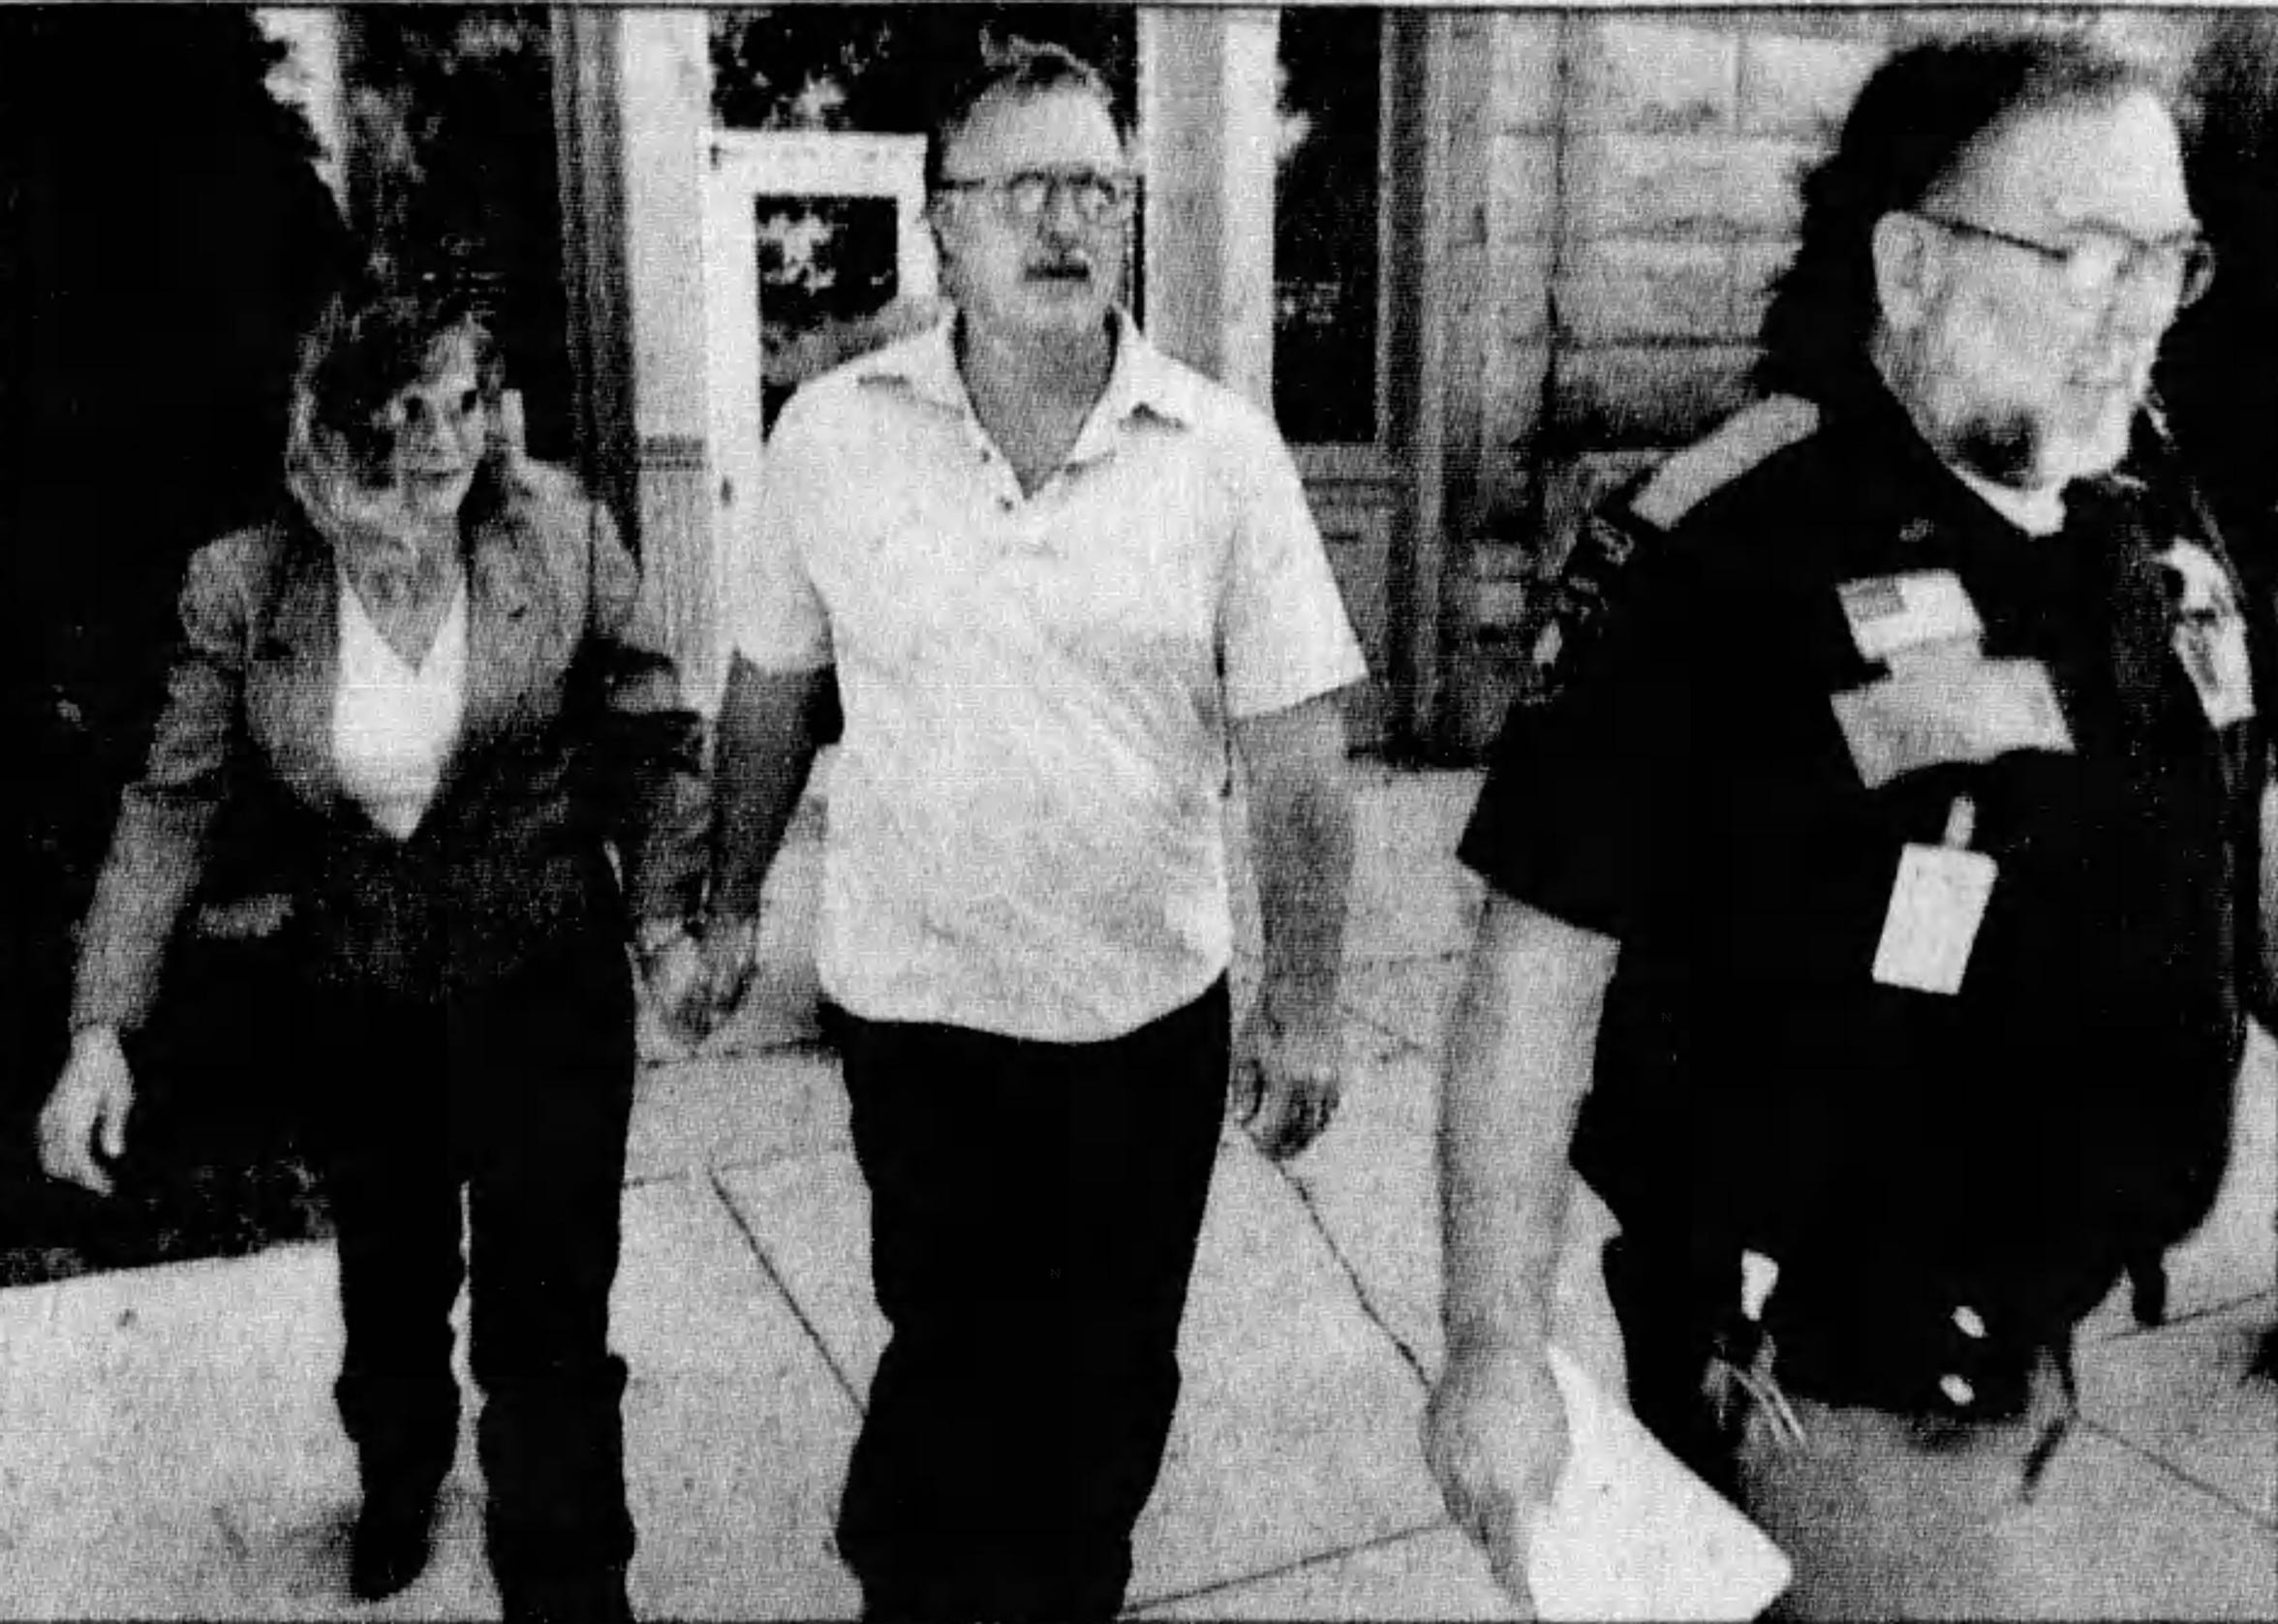 Pamela Polejewski, left and her partner Mike Hanson, center, are escorted out of court in 2005 following the seizure of more than 200 animals on their Wexford Lane property.